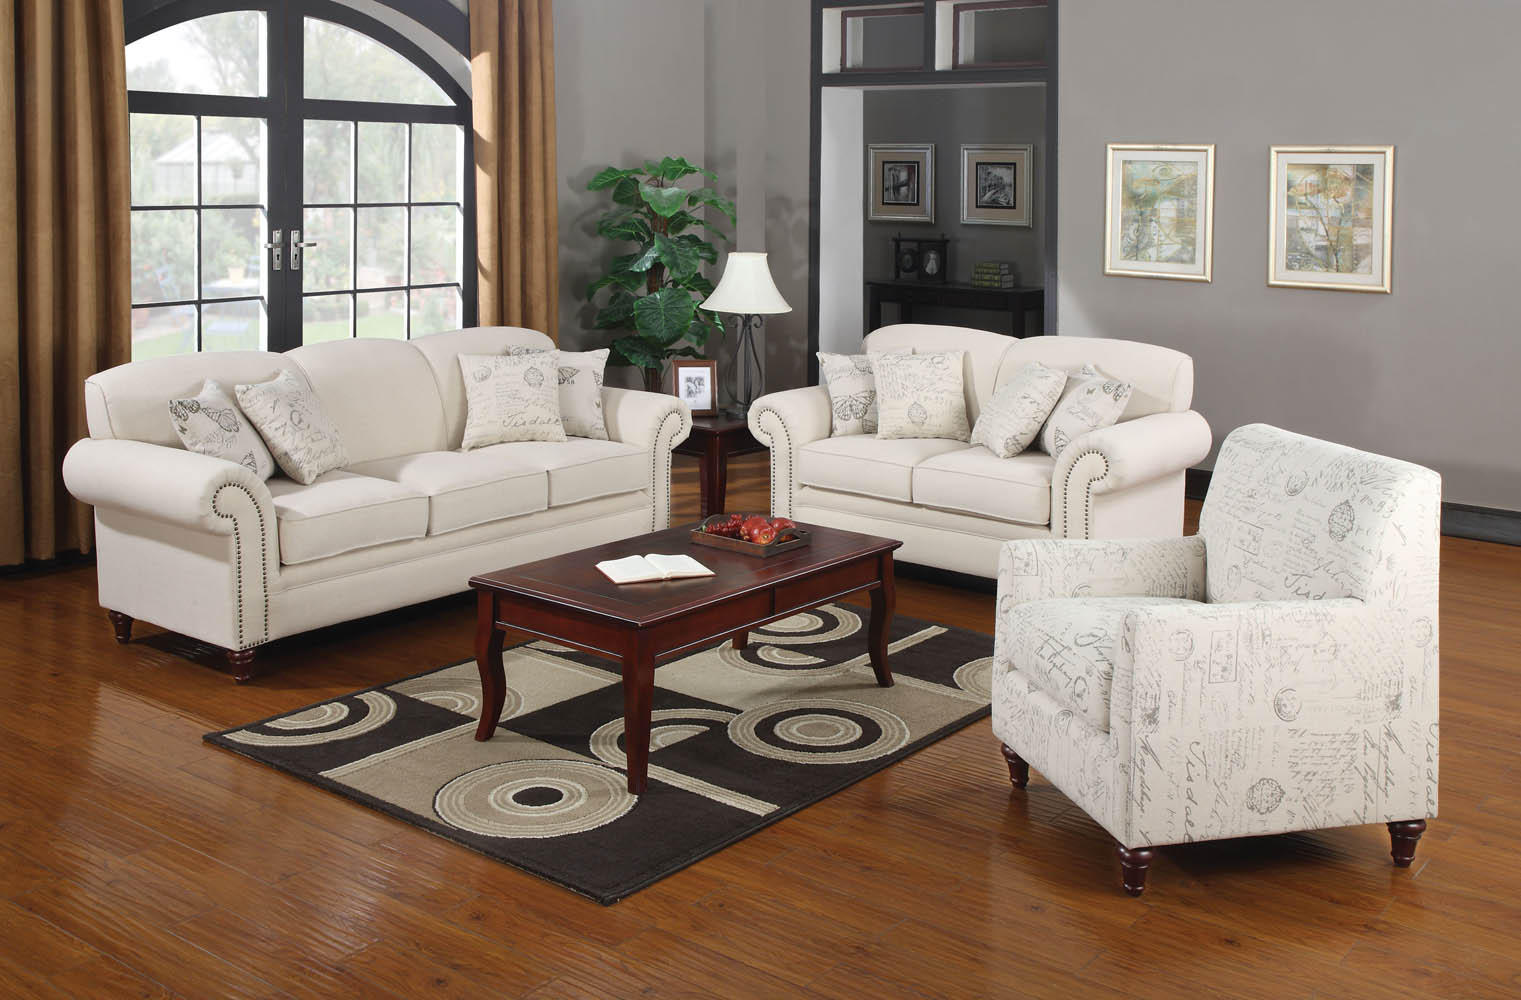 3 piece sofa set 3 Piece Oatmeal Linen Fabric Sofa Set 3 piece sofa set